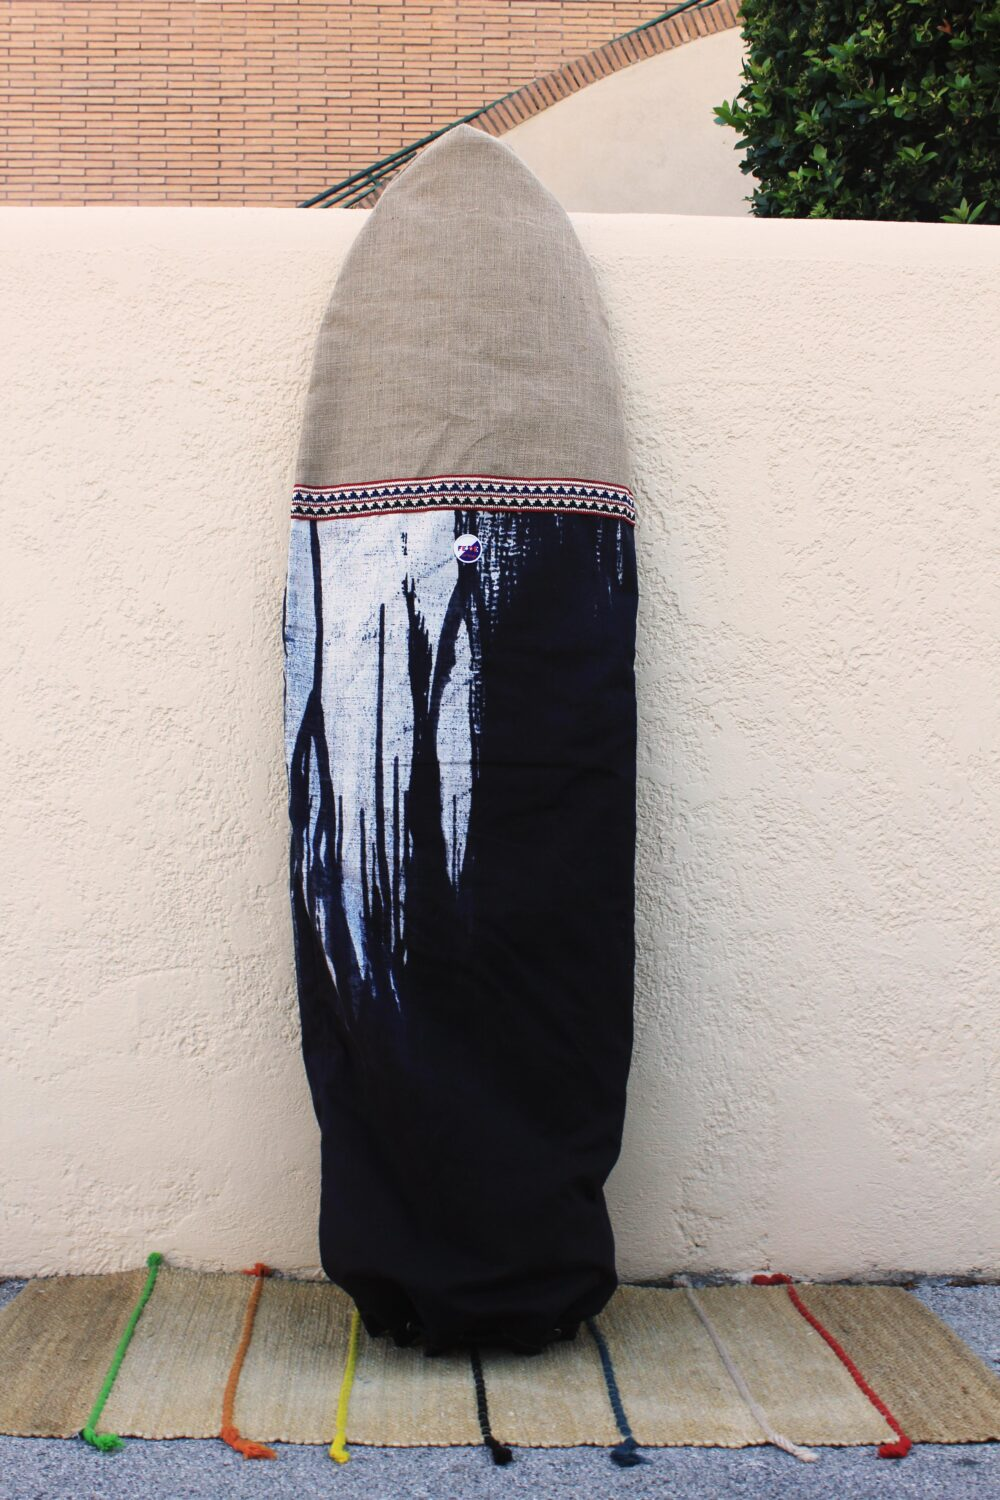 Blue Tie Dyed Surfboard Bag with single fin slot. Handmade in Italy by Fede Surfbags